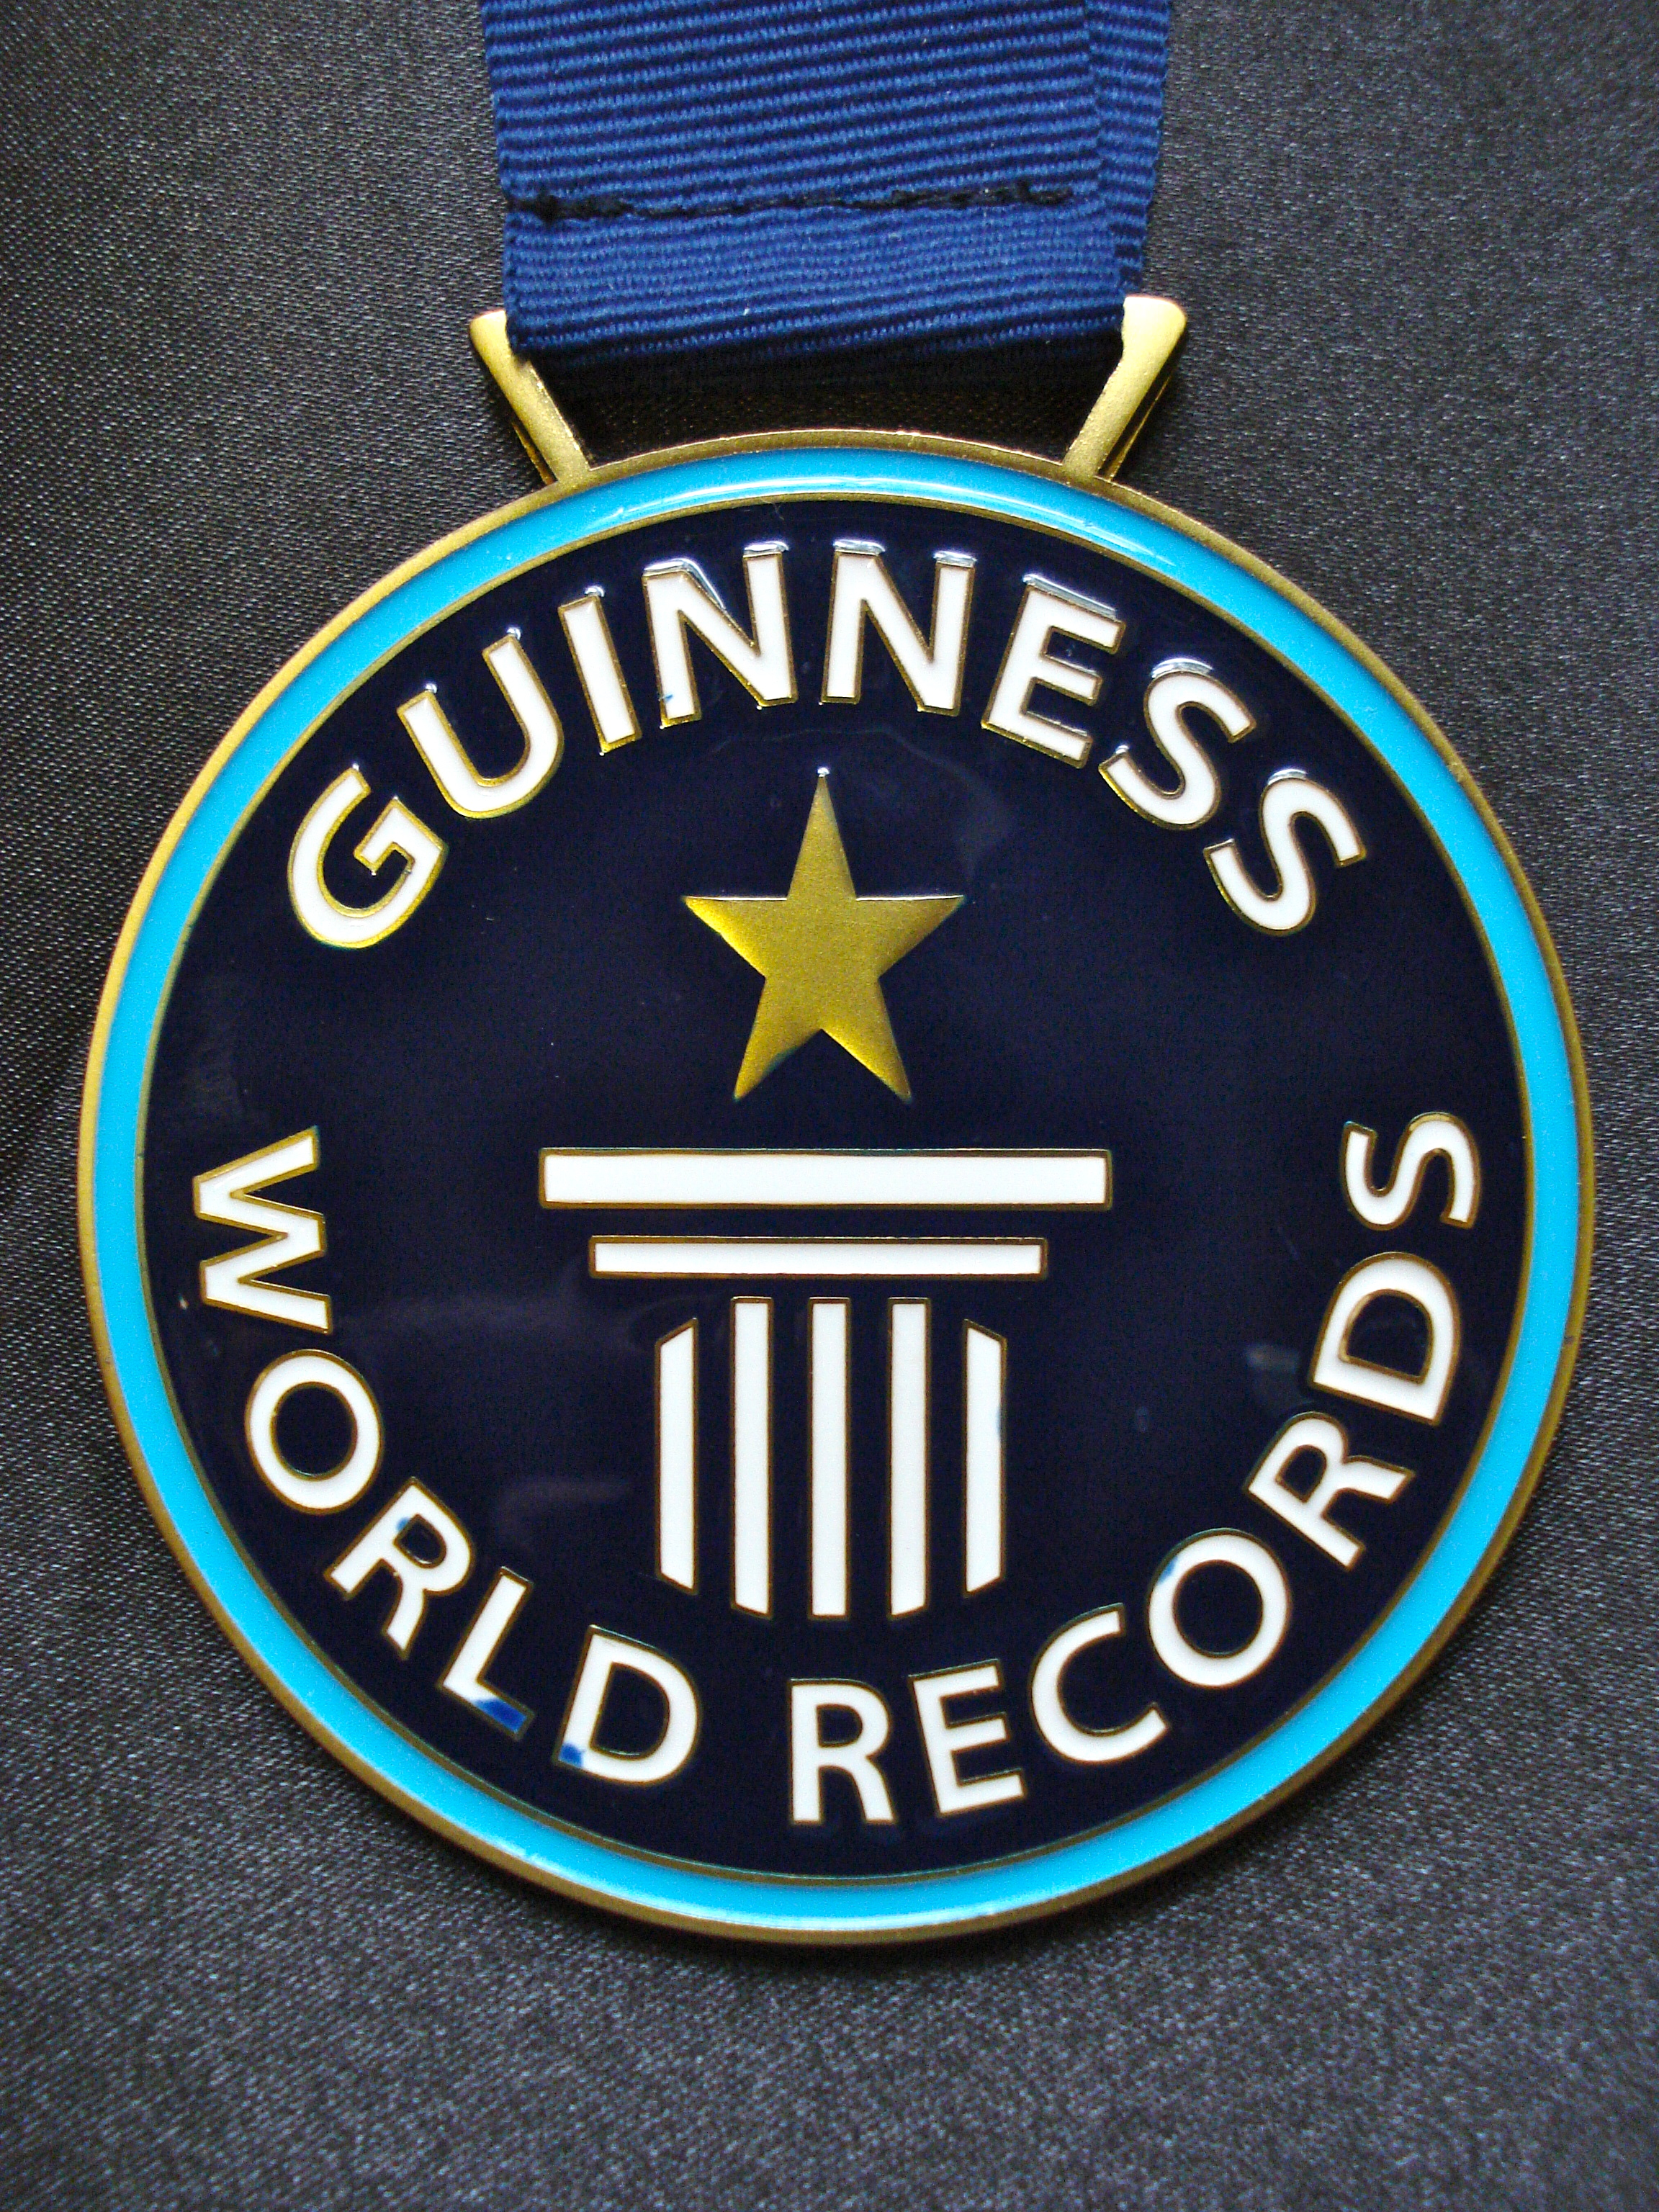 guinness book of world records application